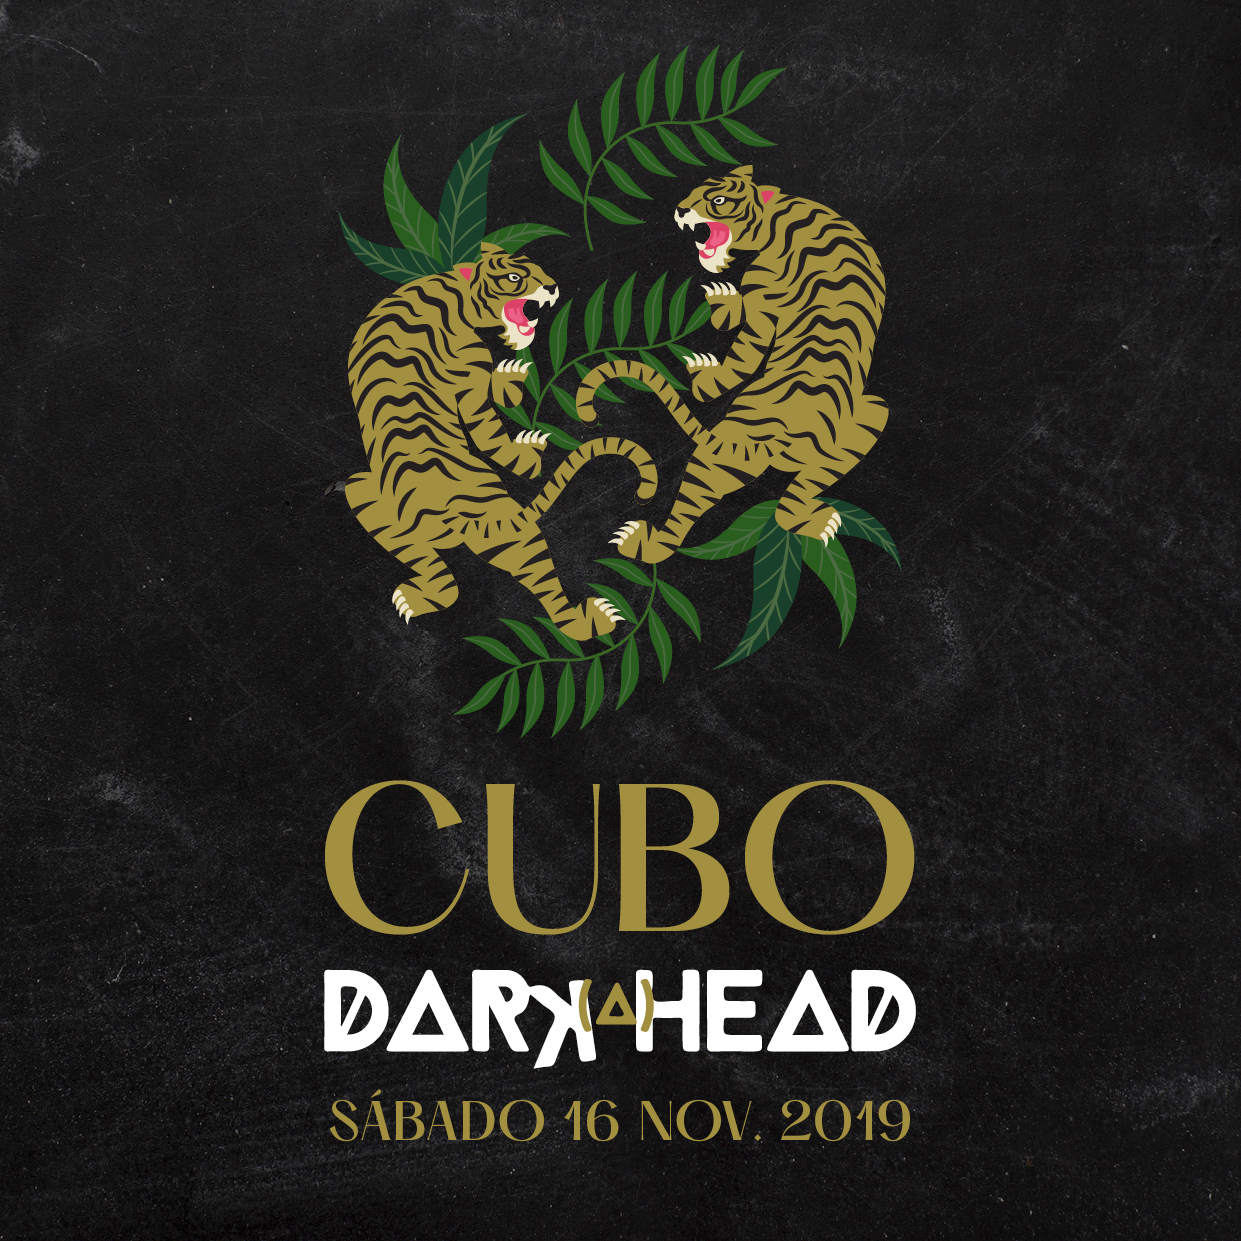 Cubo: Darkahead 16 nov. 2019